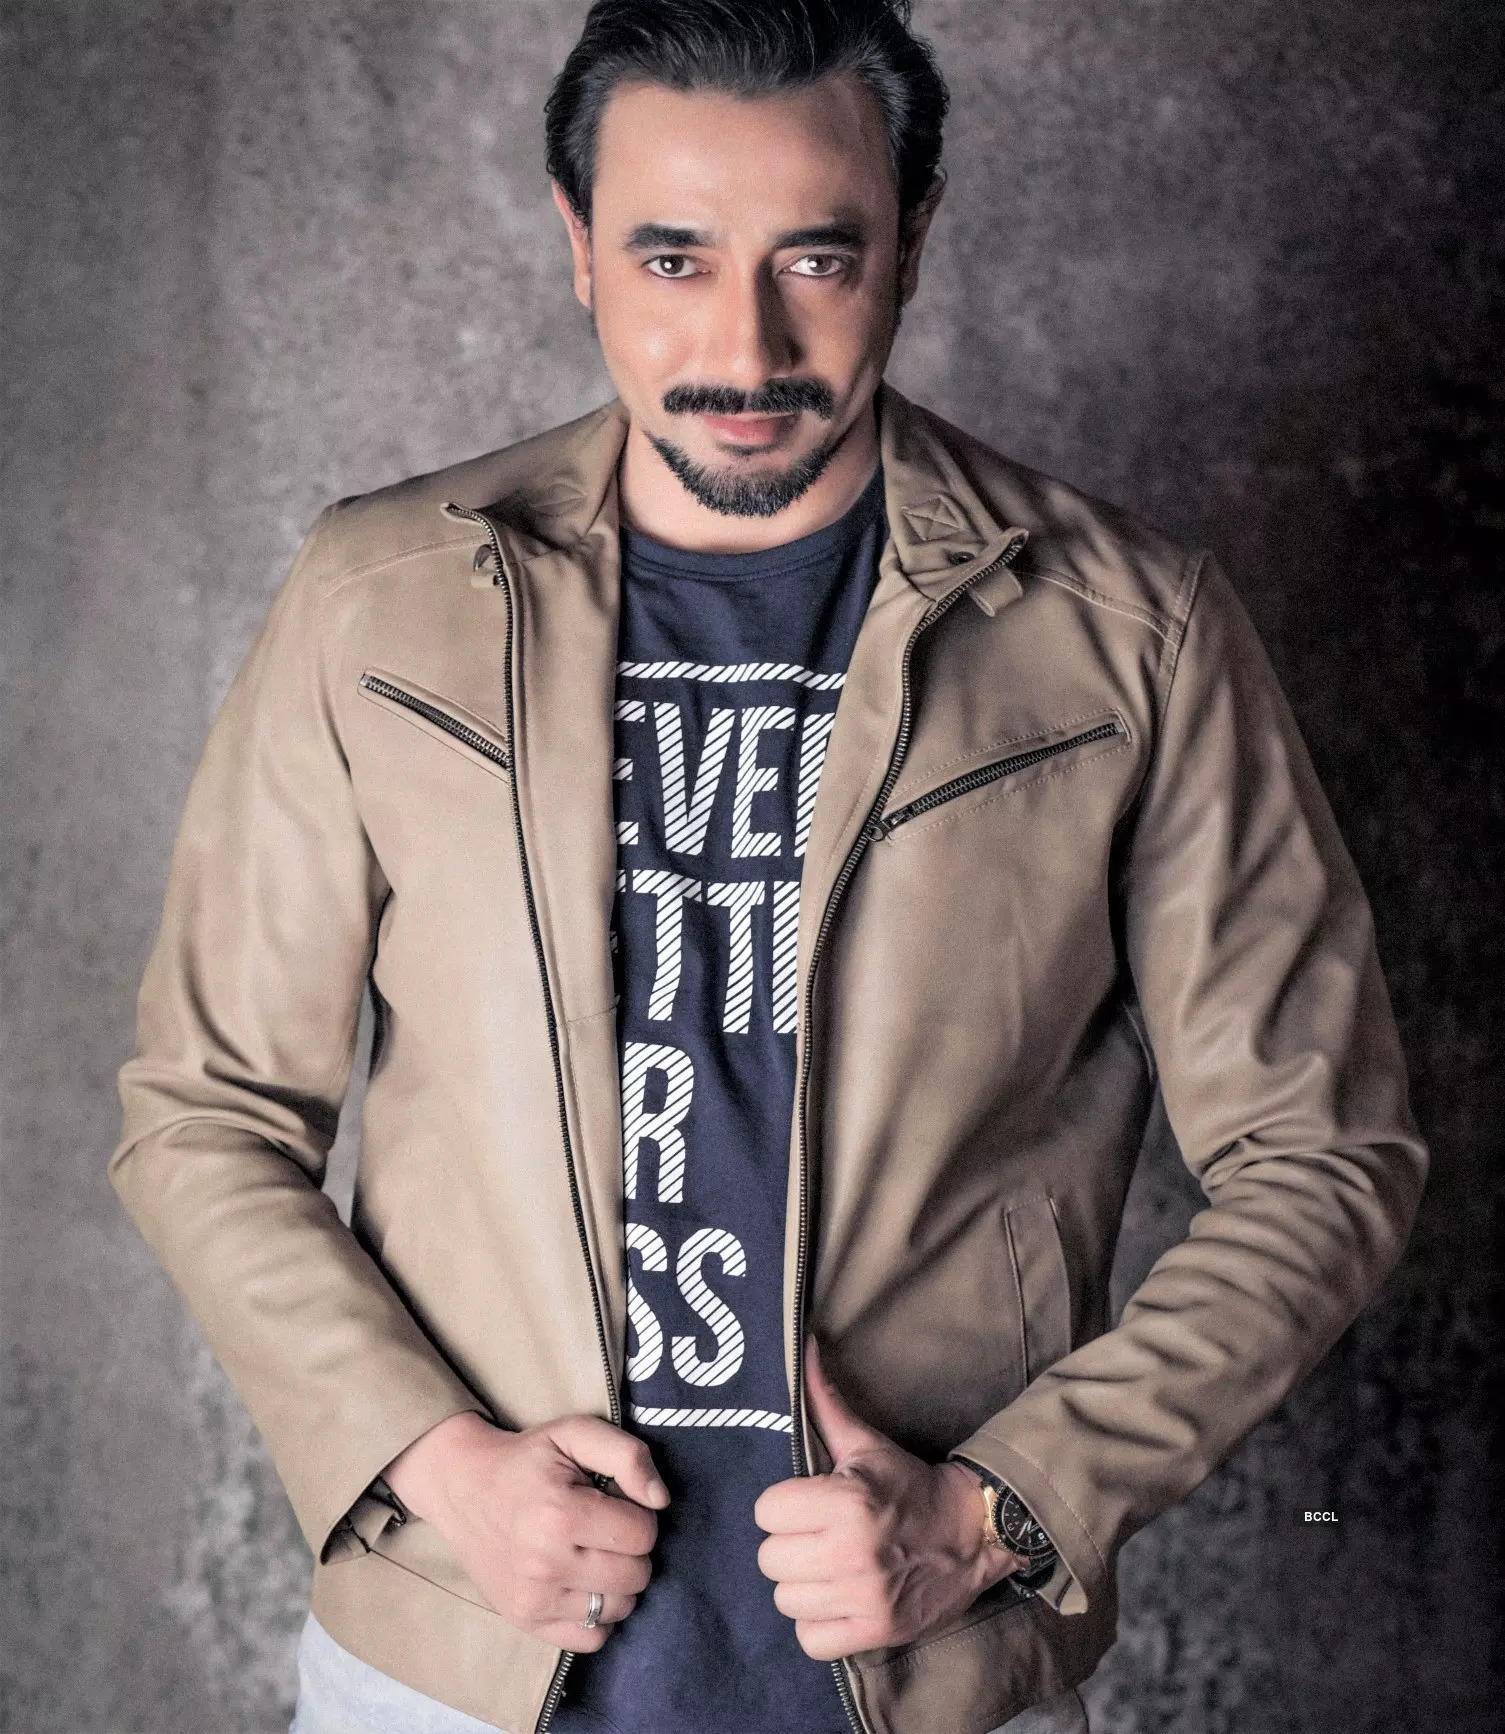 Pictures of director Mantra, whose podcast 'Virus 2062' is garnering great reviews